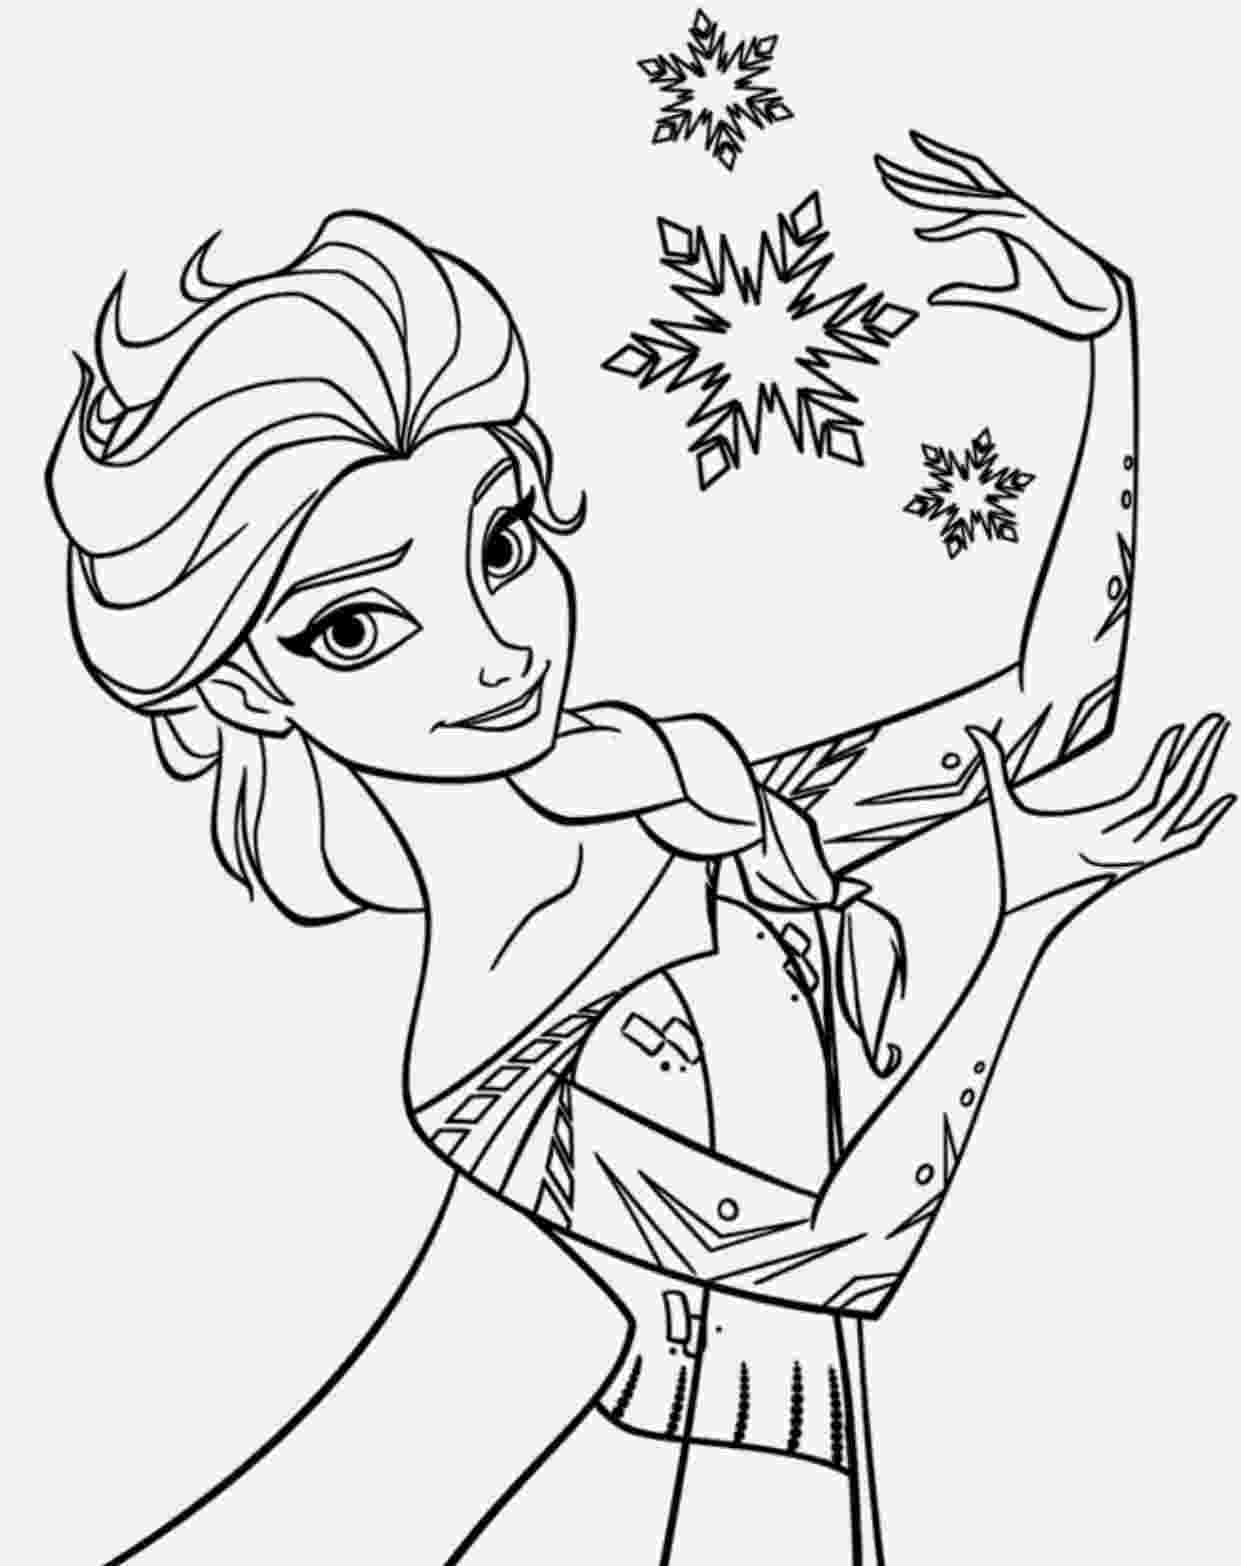 coloring pages printable frozen free printable frozen coloring pages for kids best coloring frozen pages printable